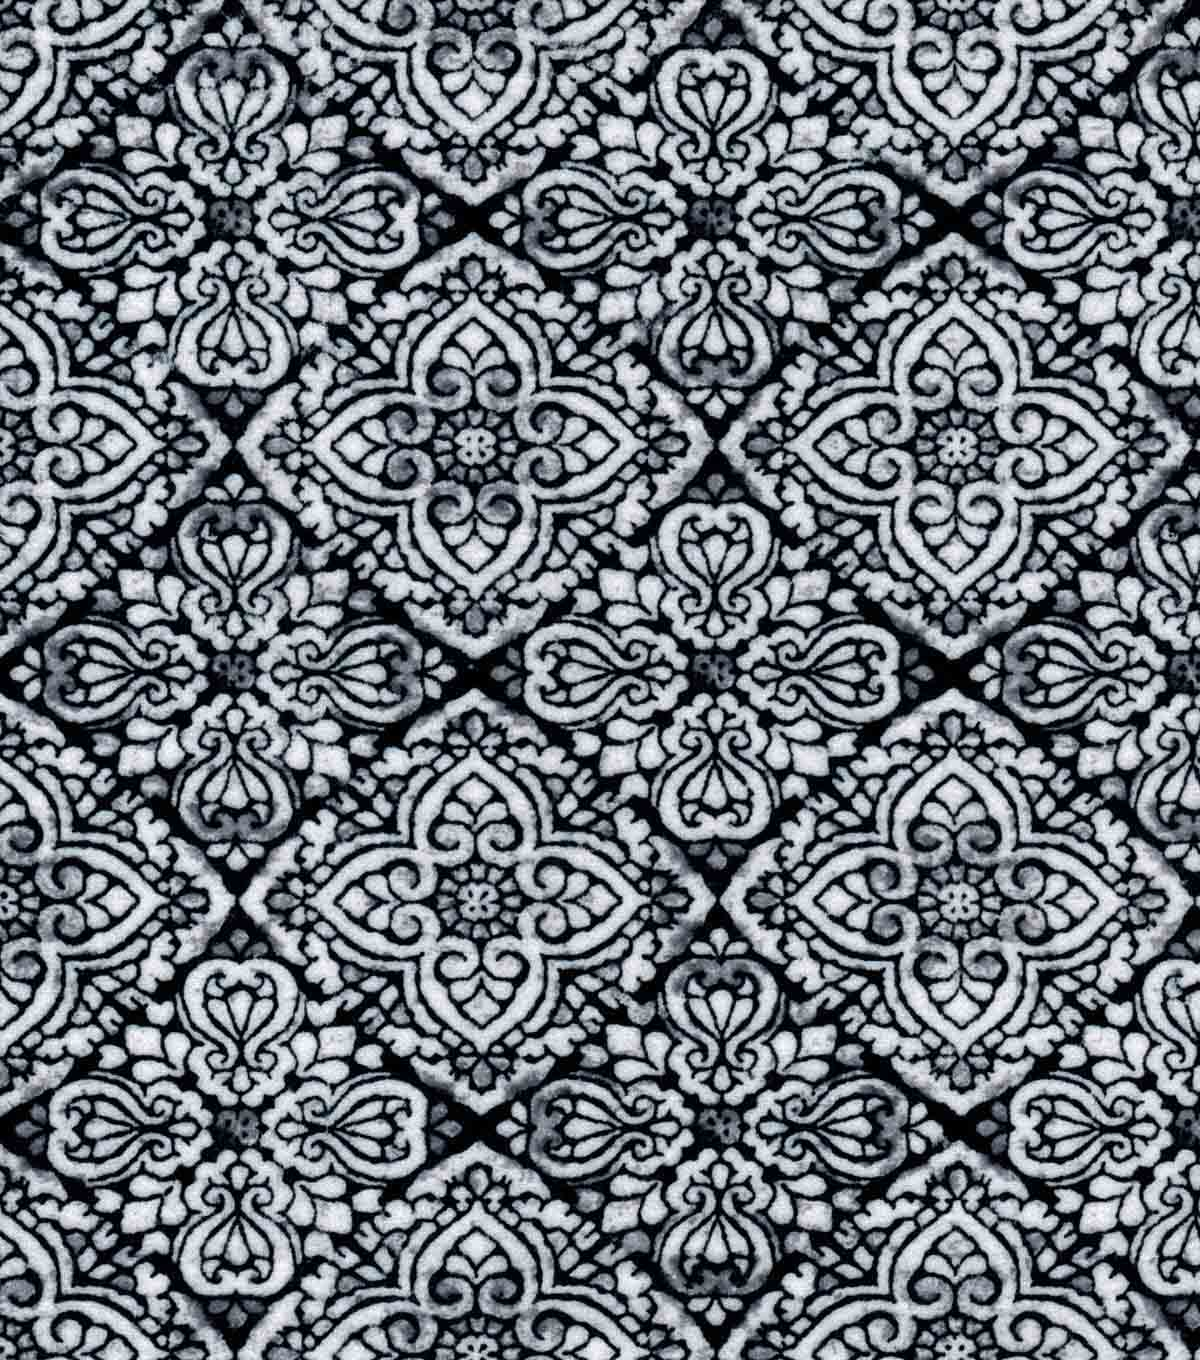 Luxe Flannel Fabric -Culture Stamp Black & White